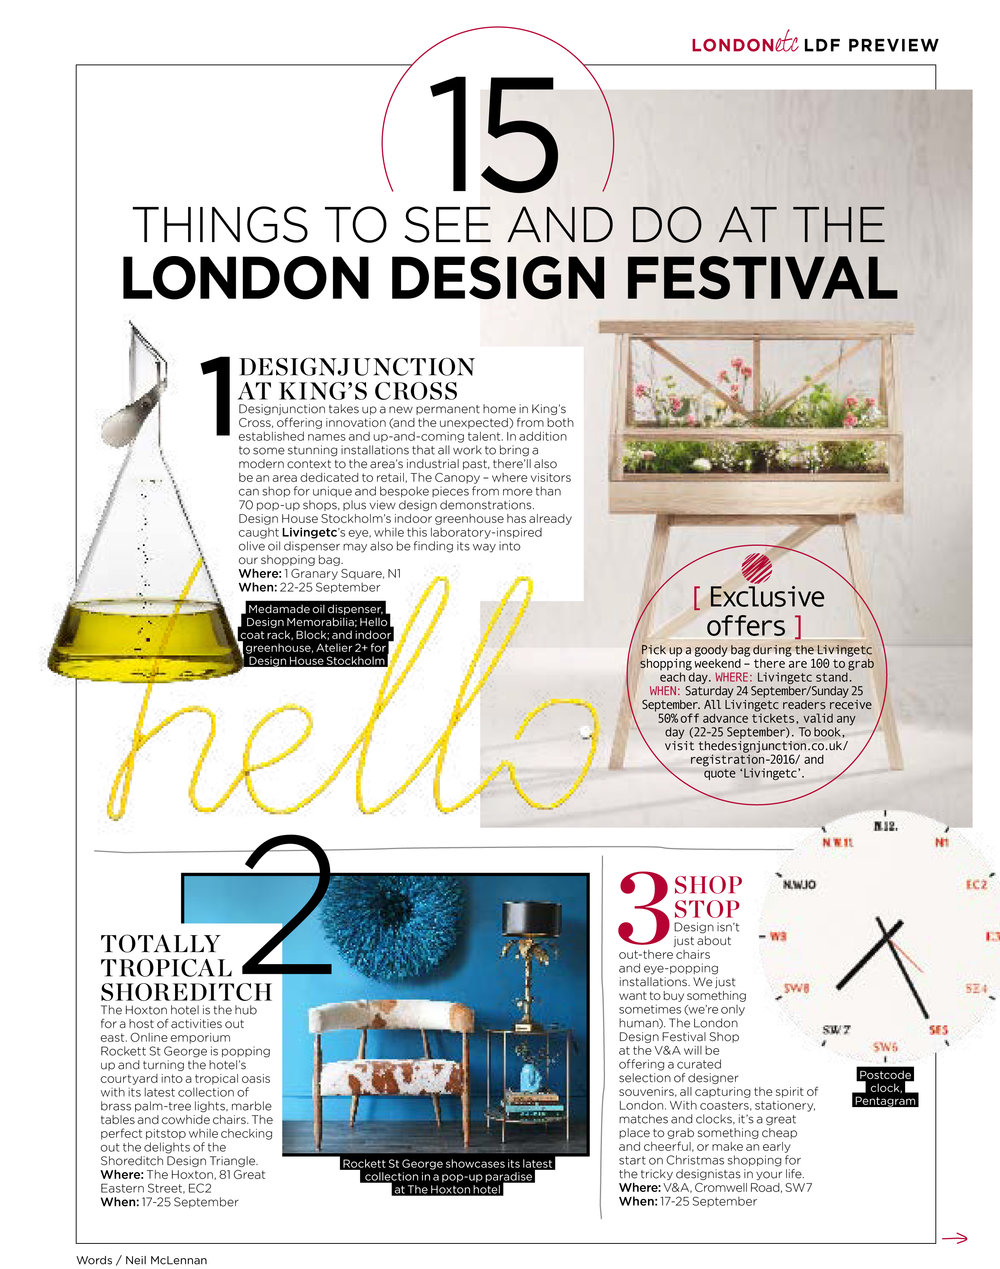 Layman's guide to the London Design Festival